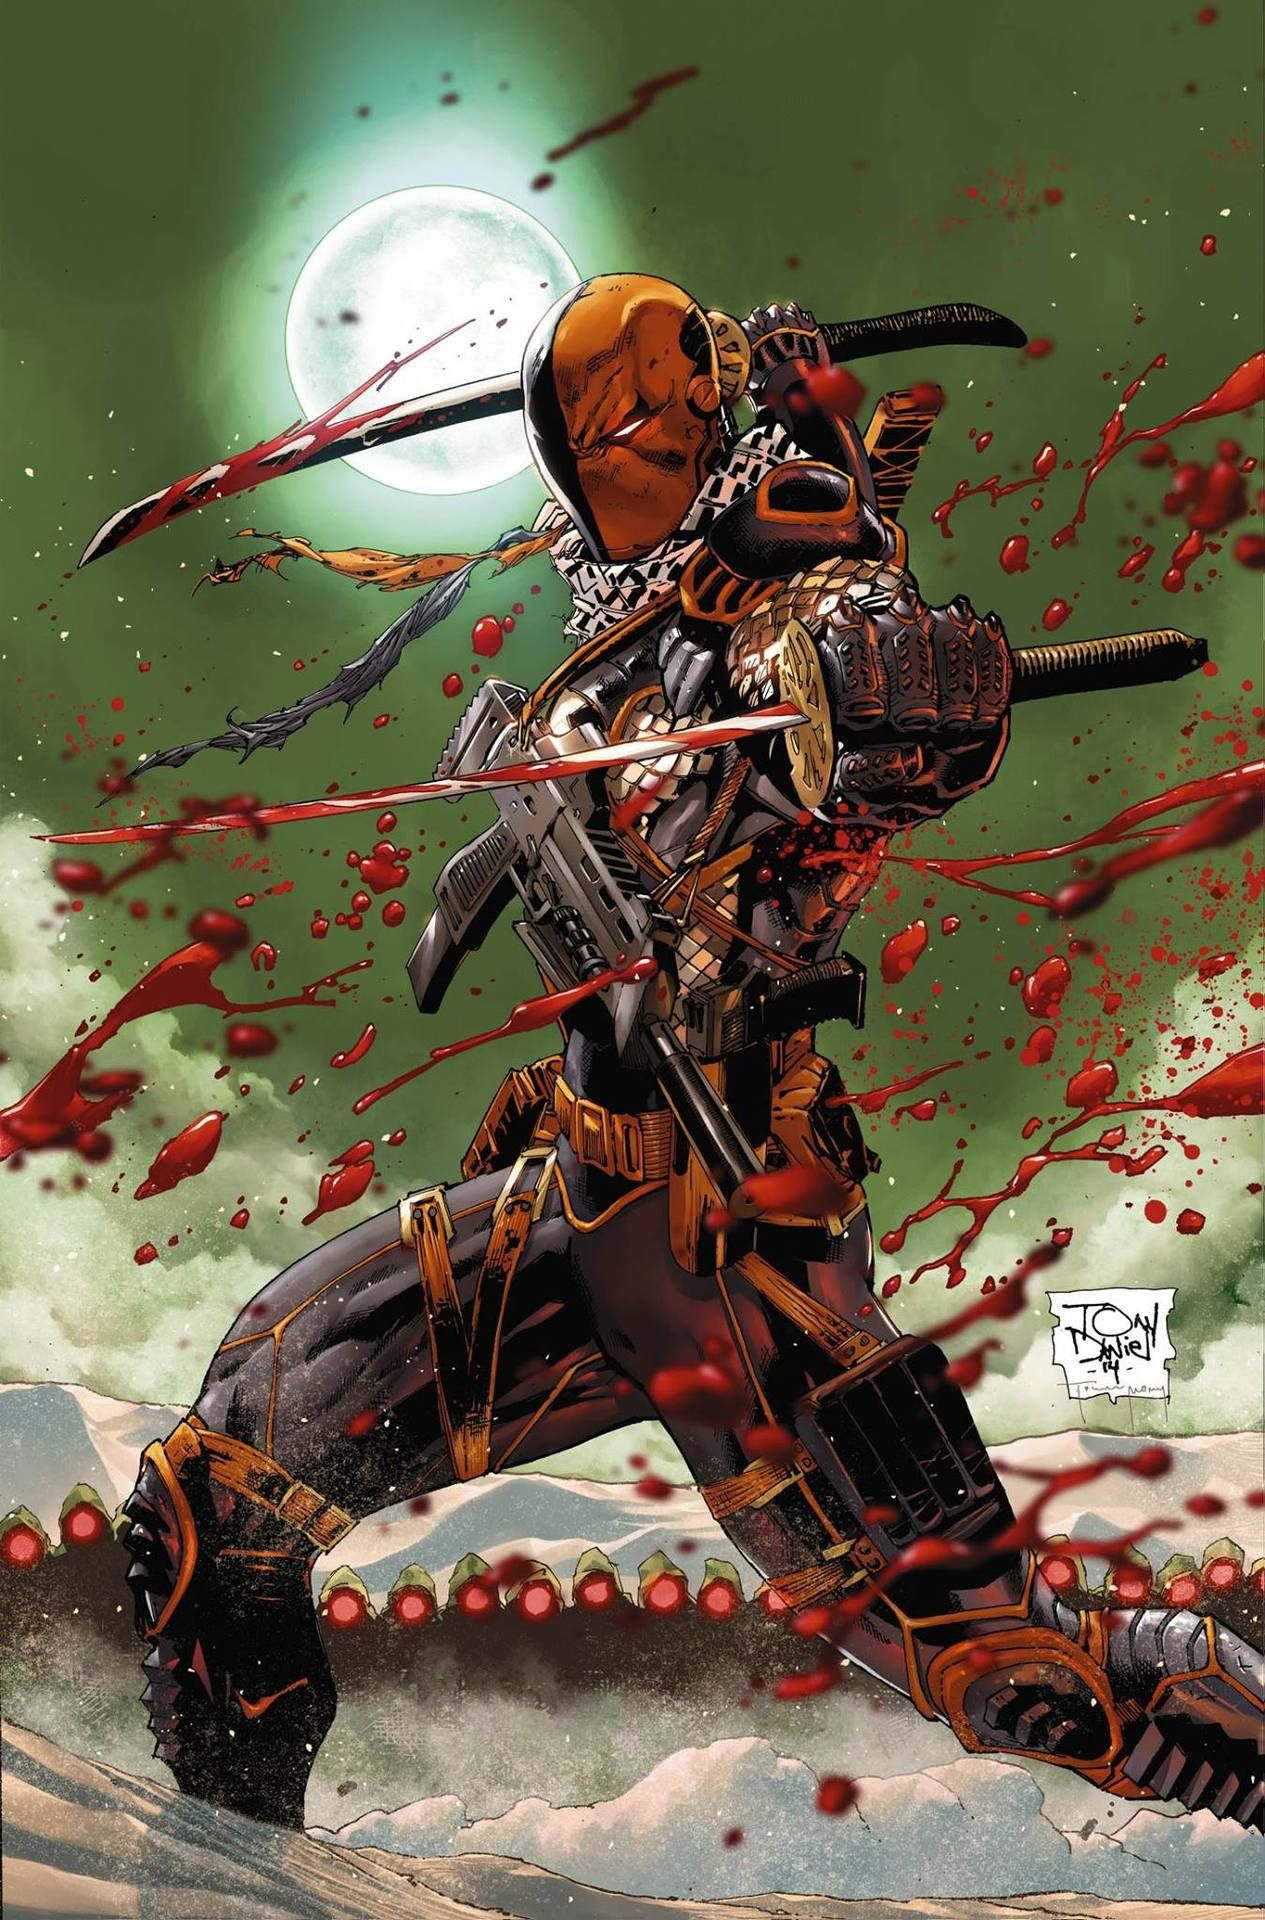 Deathstroke #3 by Tony Daniel, colors by Tomeu Morey.